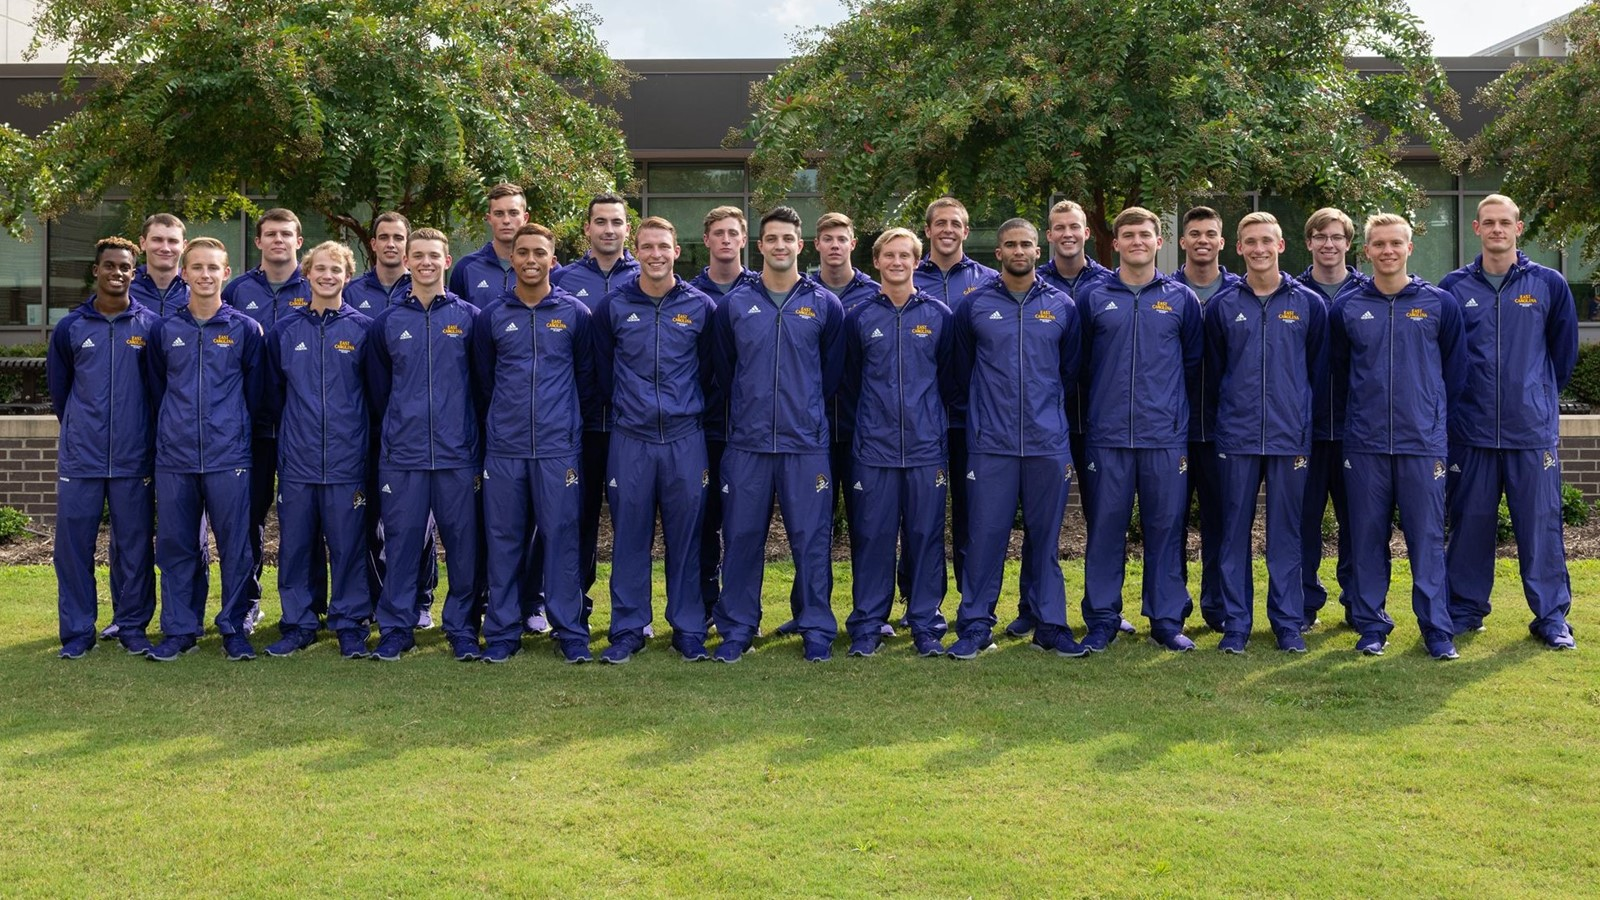 f4cd2e4a11 2018-19 Men's Swimming and Diving Roster - East Carolina University ...